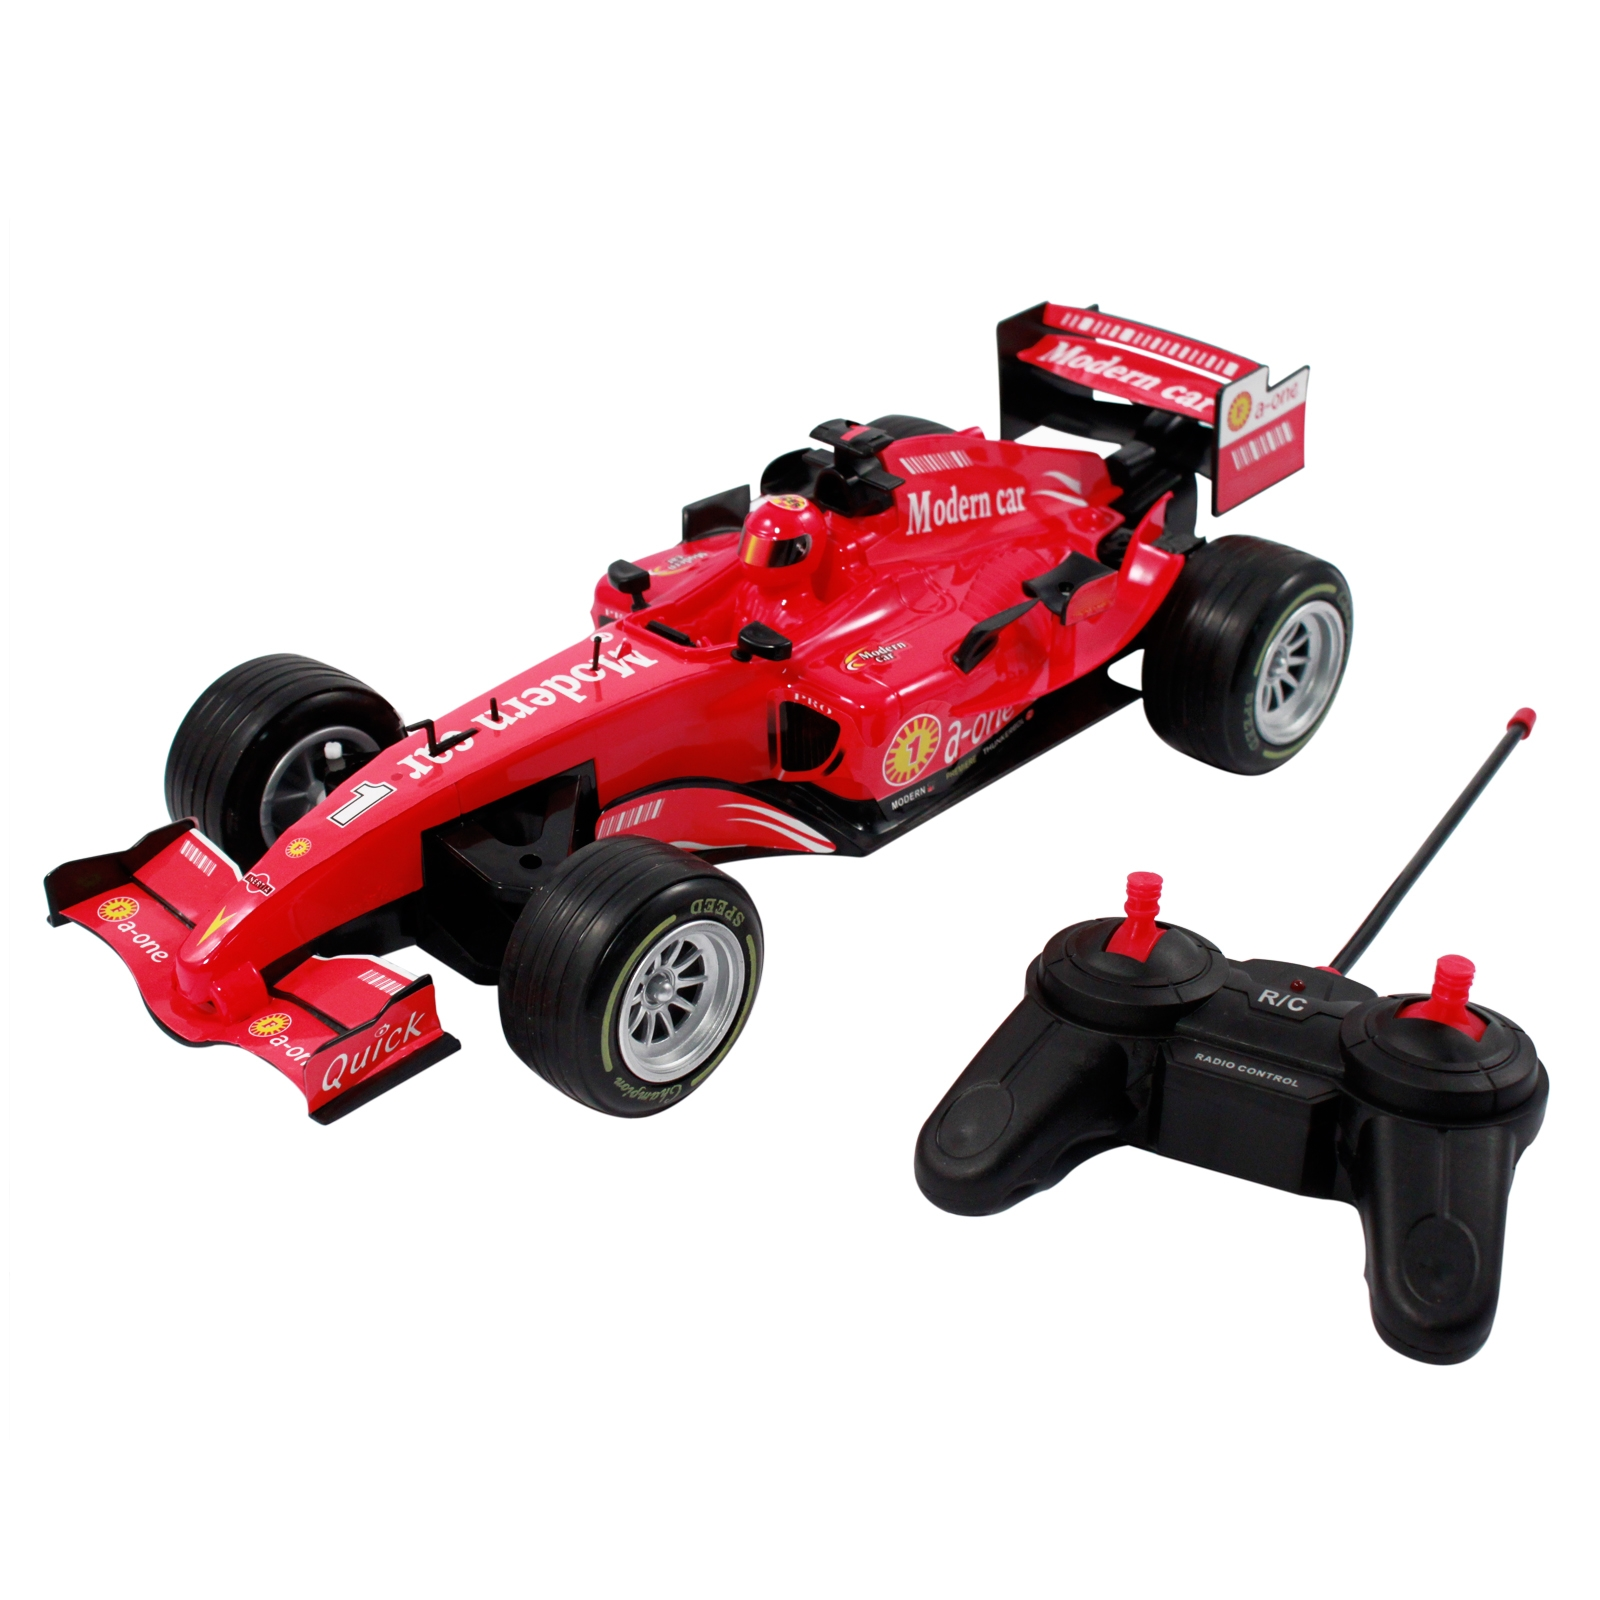 Speedy remote control red Indy race car for kids and boys